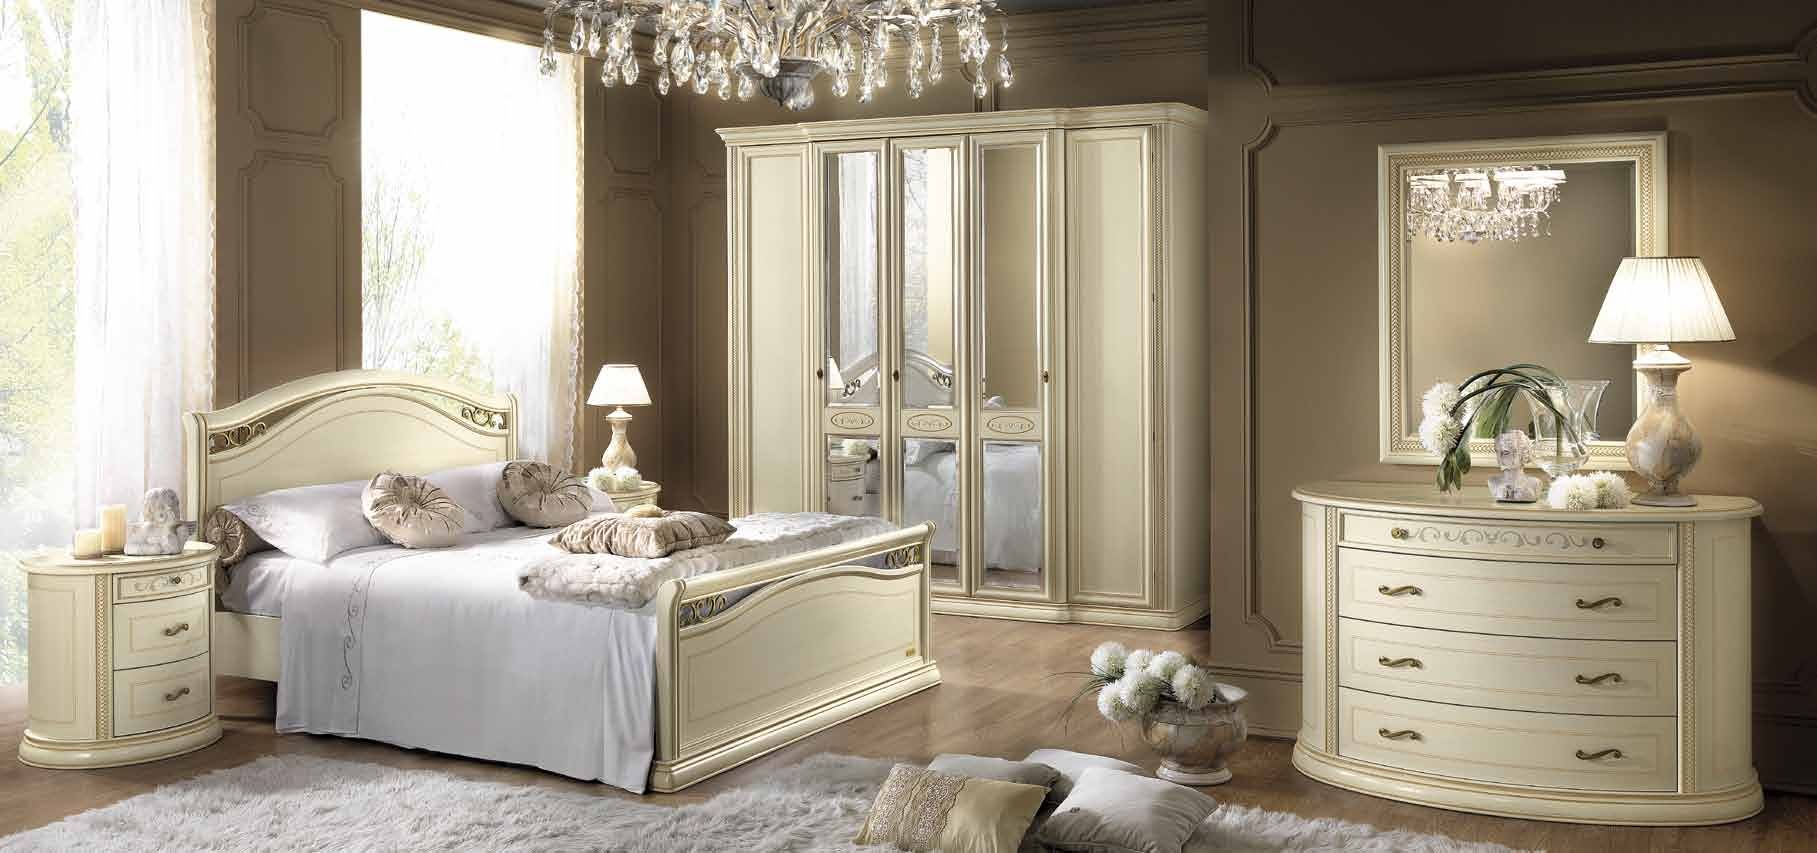 Siena italian bedroom furniture in ivory italian bedroom furniture pinterest italian - Italian furniture for small spaces ...